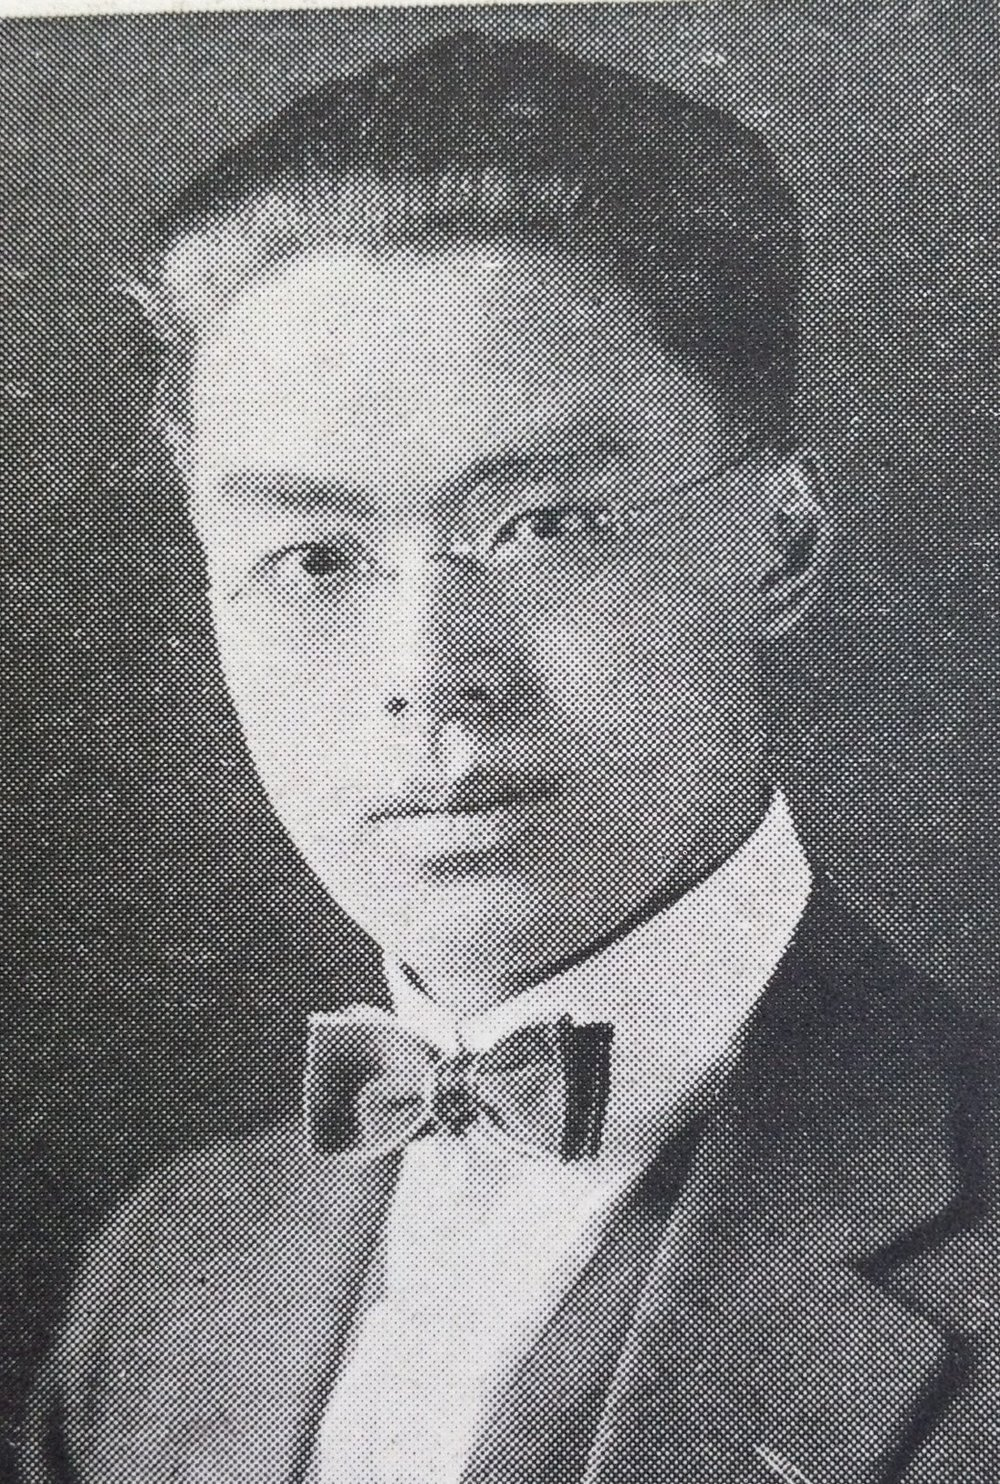 PY Tang senior photo.  Technique   1924.  Courtesy MIT Archives and Special Collections.